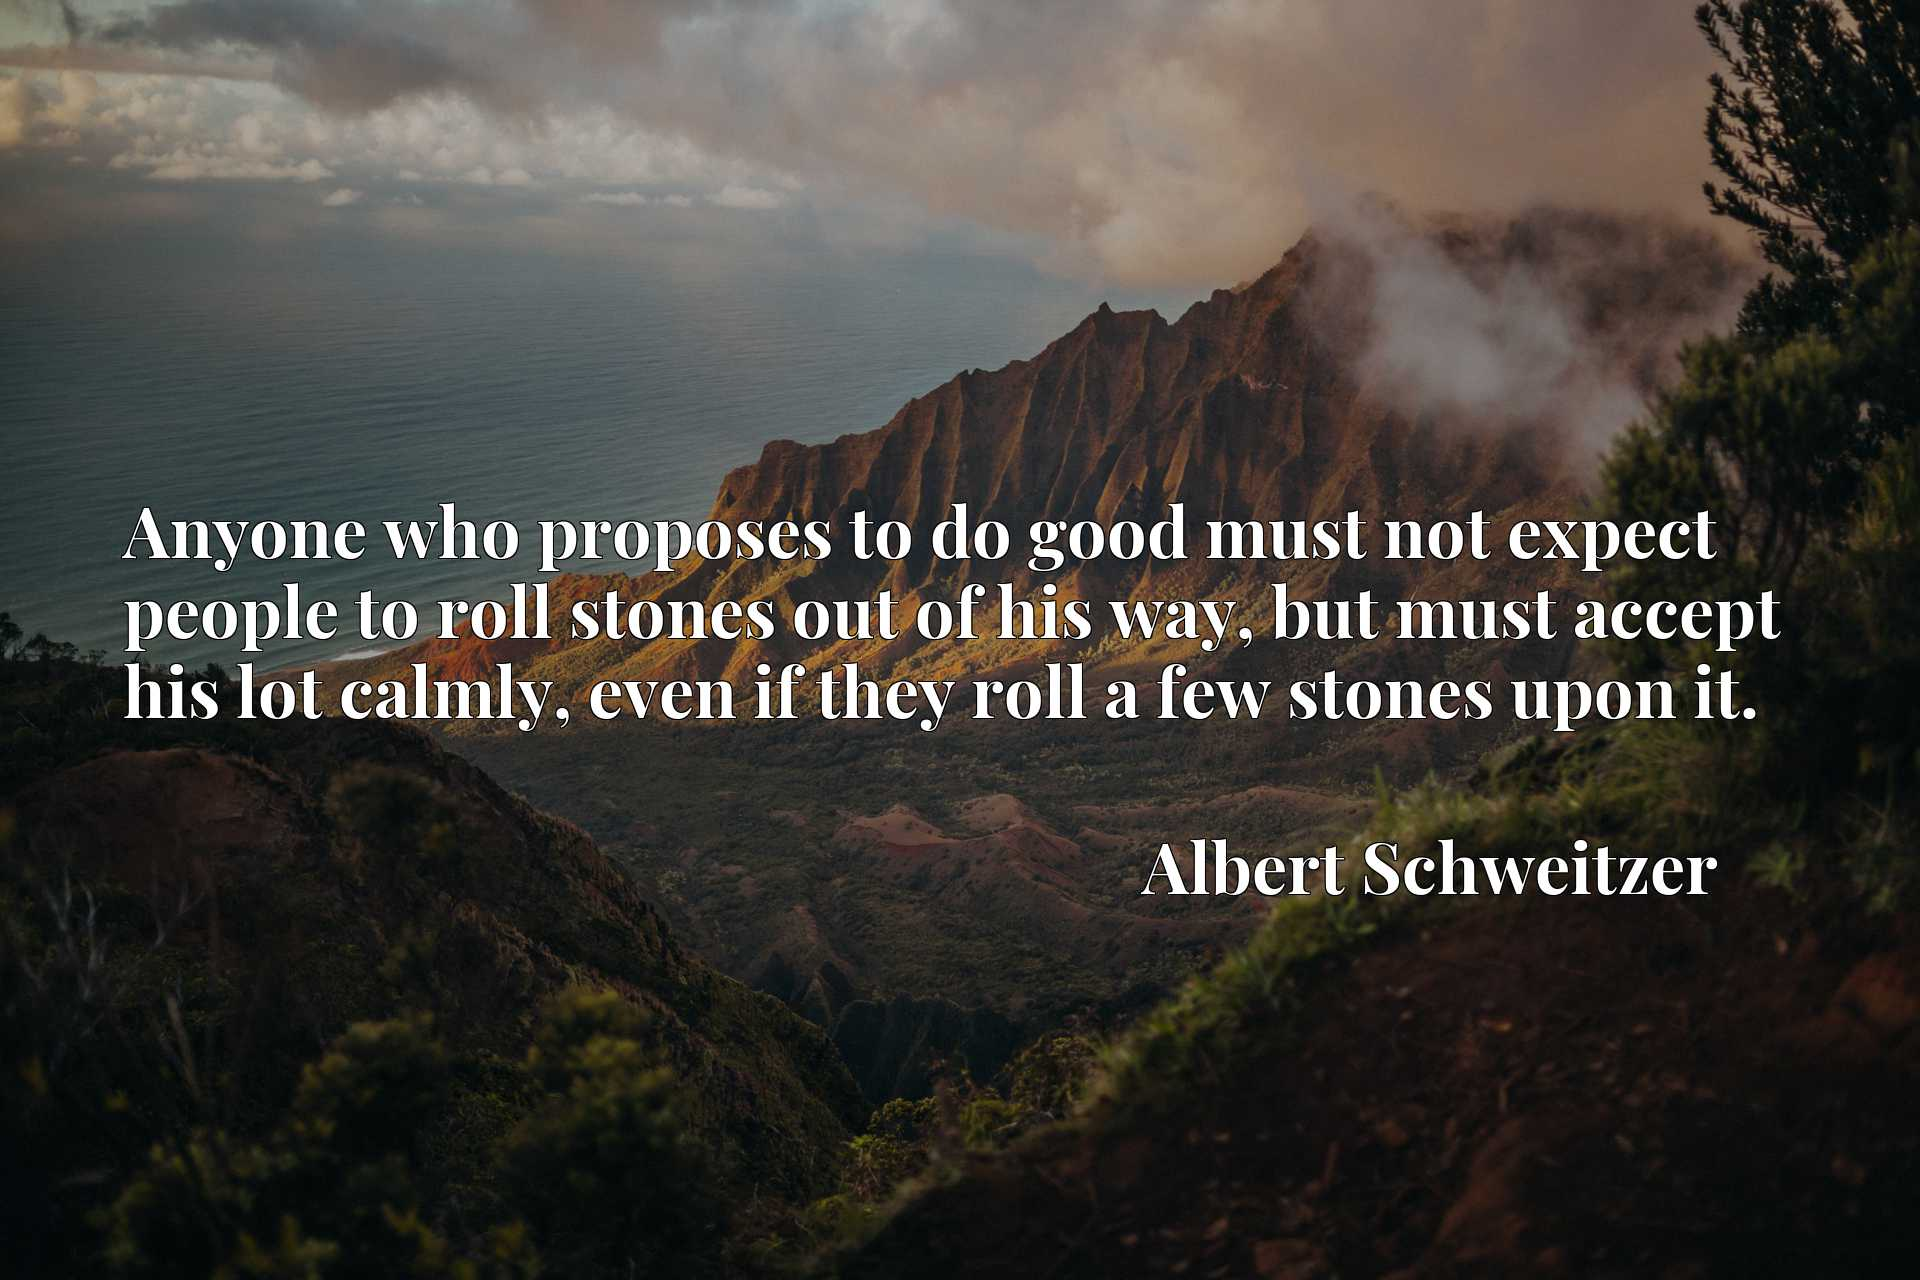 Anyone who proposes to do good must not expect people to roll stones out of his way, but must accept his lot calmly, even if they roll a few stones upon it.